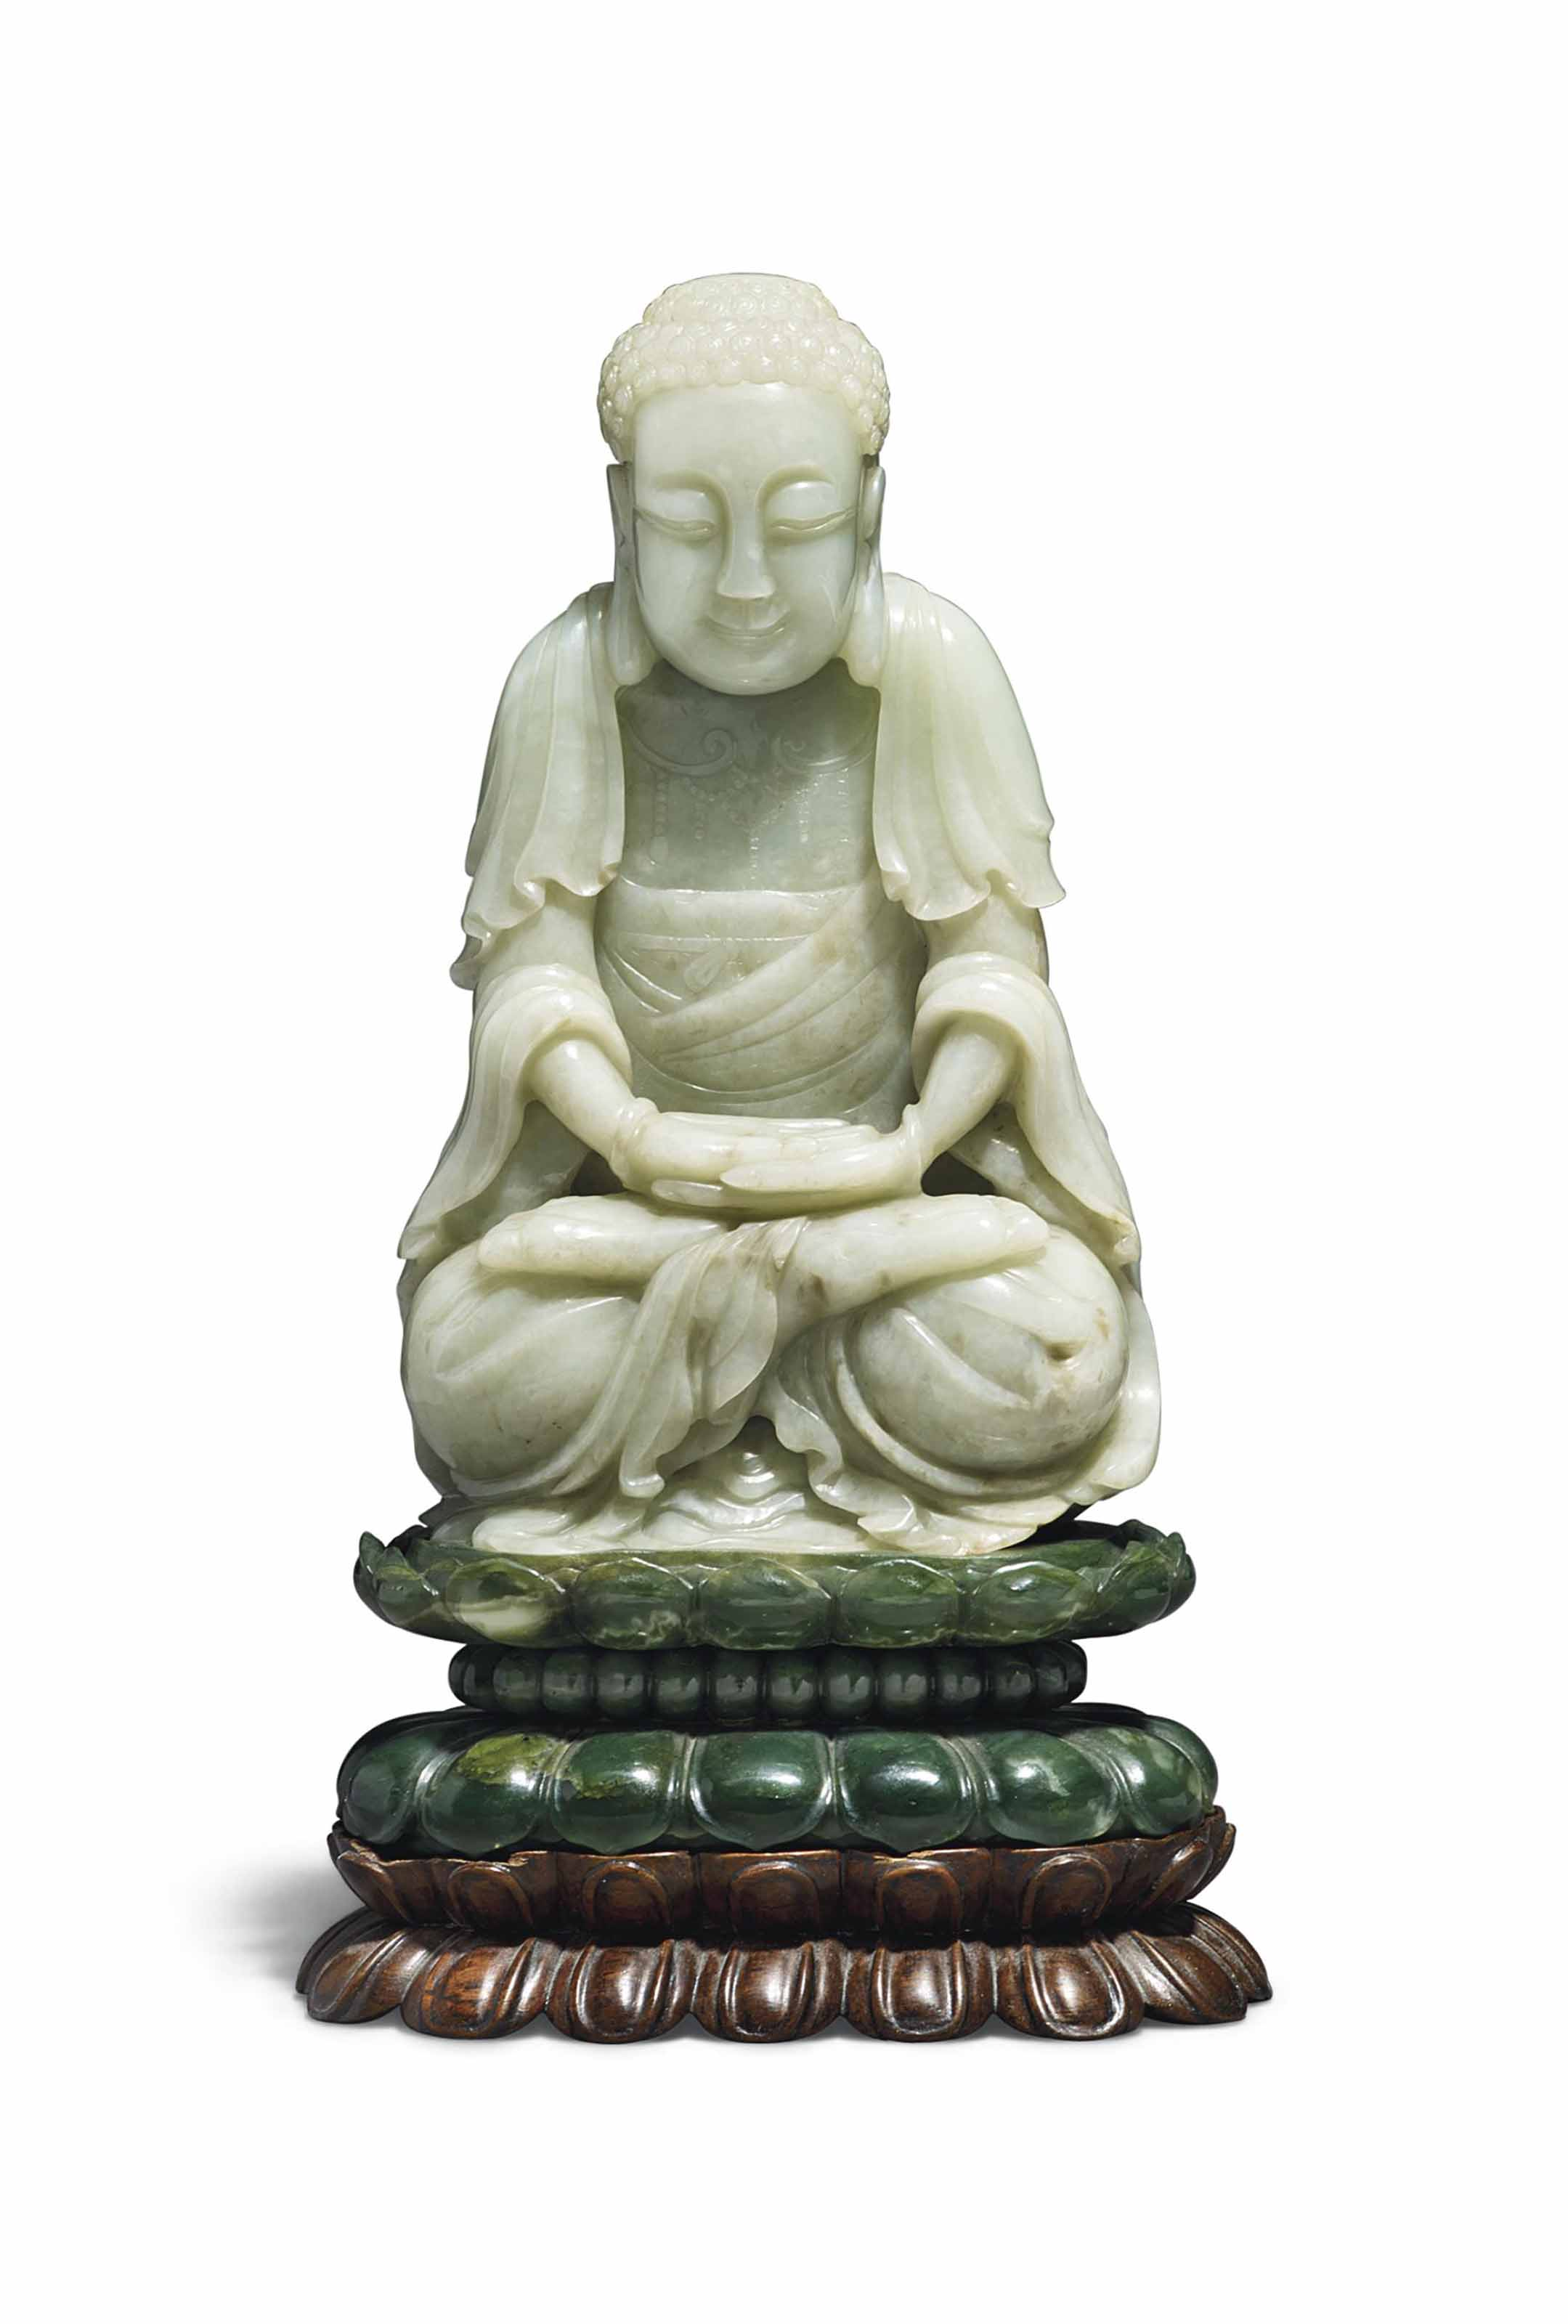 A RARE PALE CELADON JADE FIGURE OF A SEATED BUDDHA